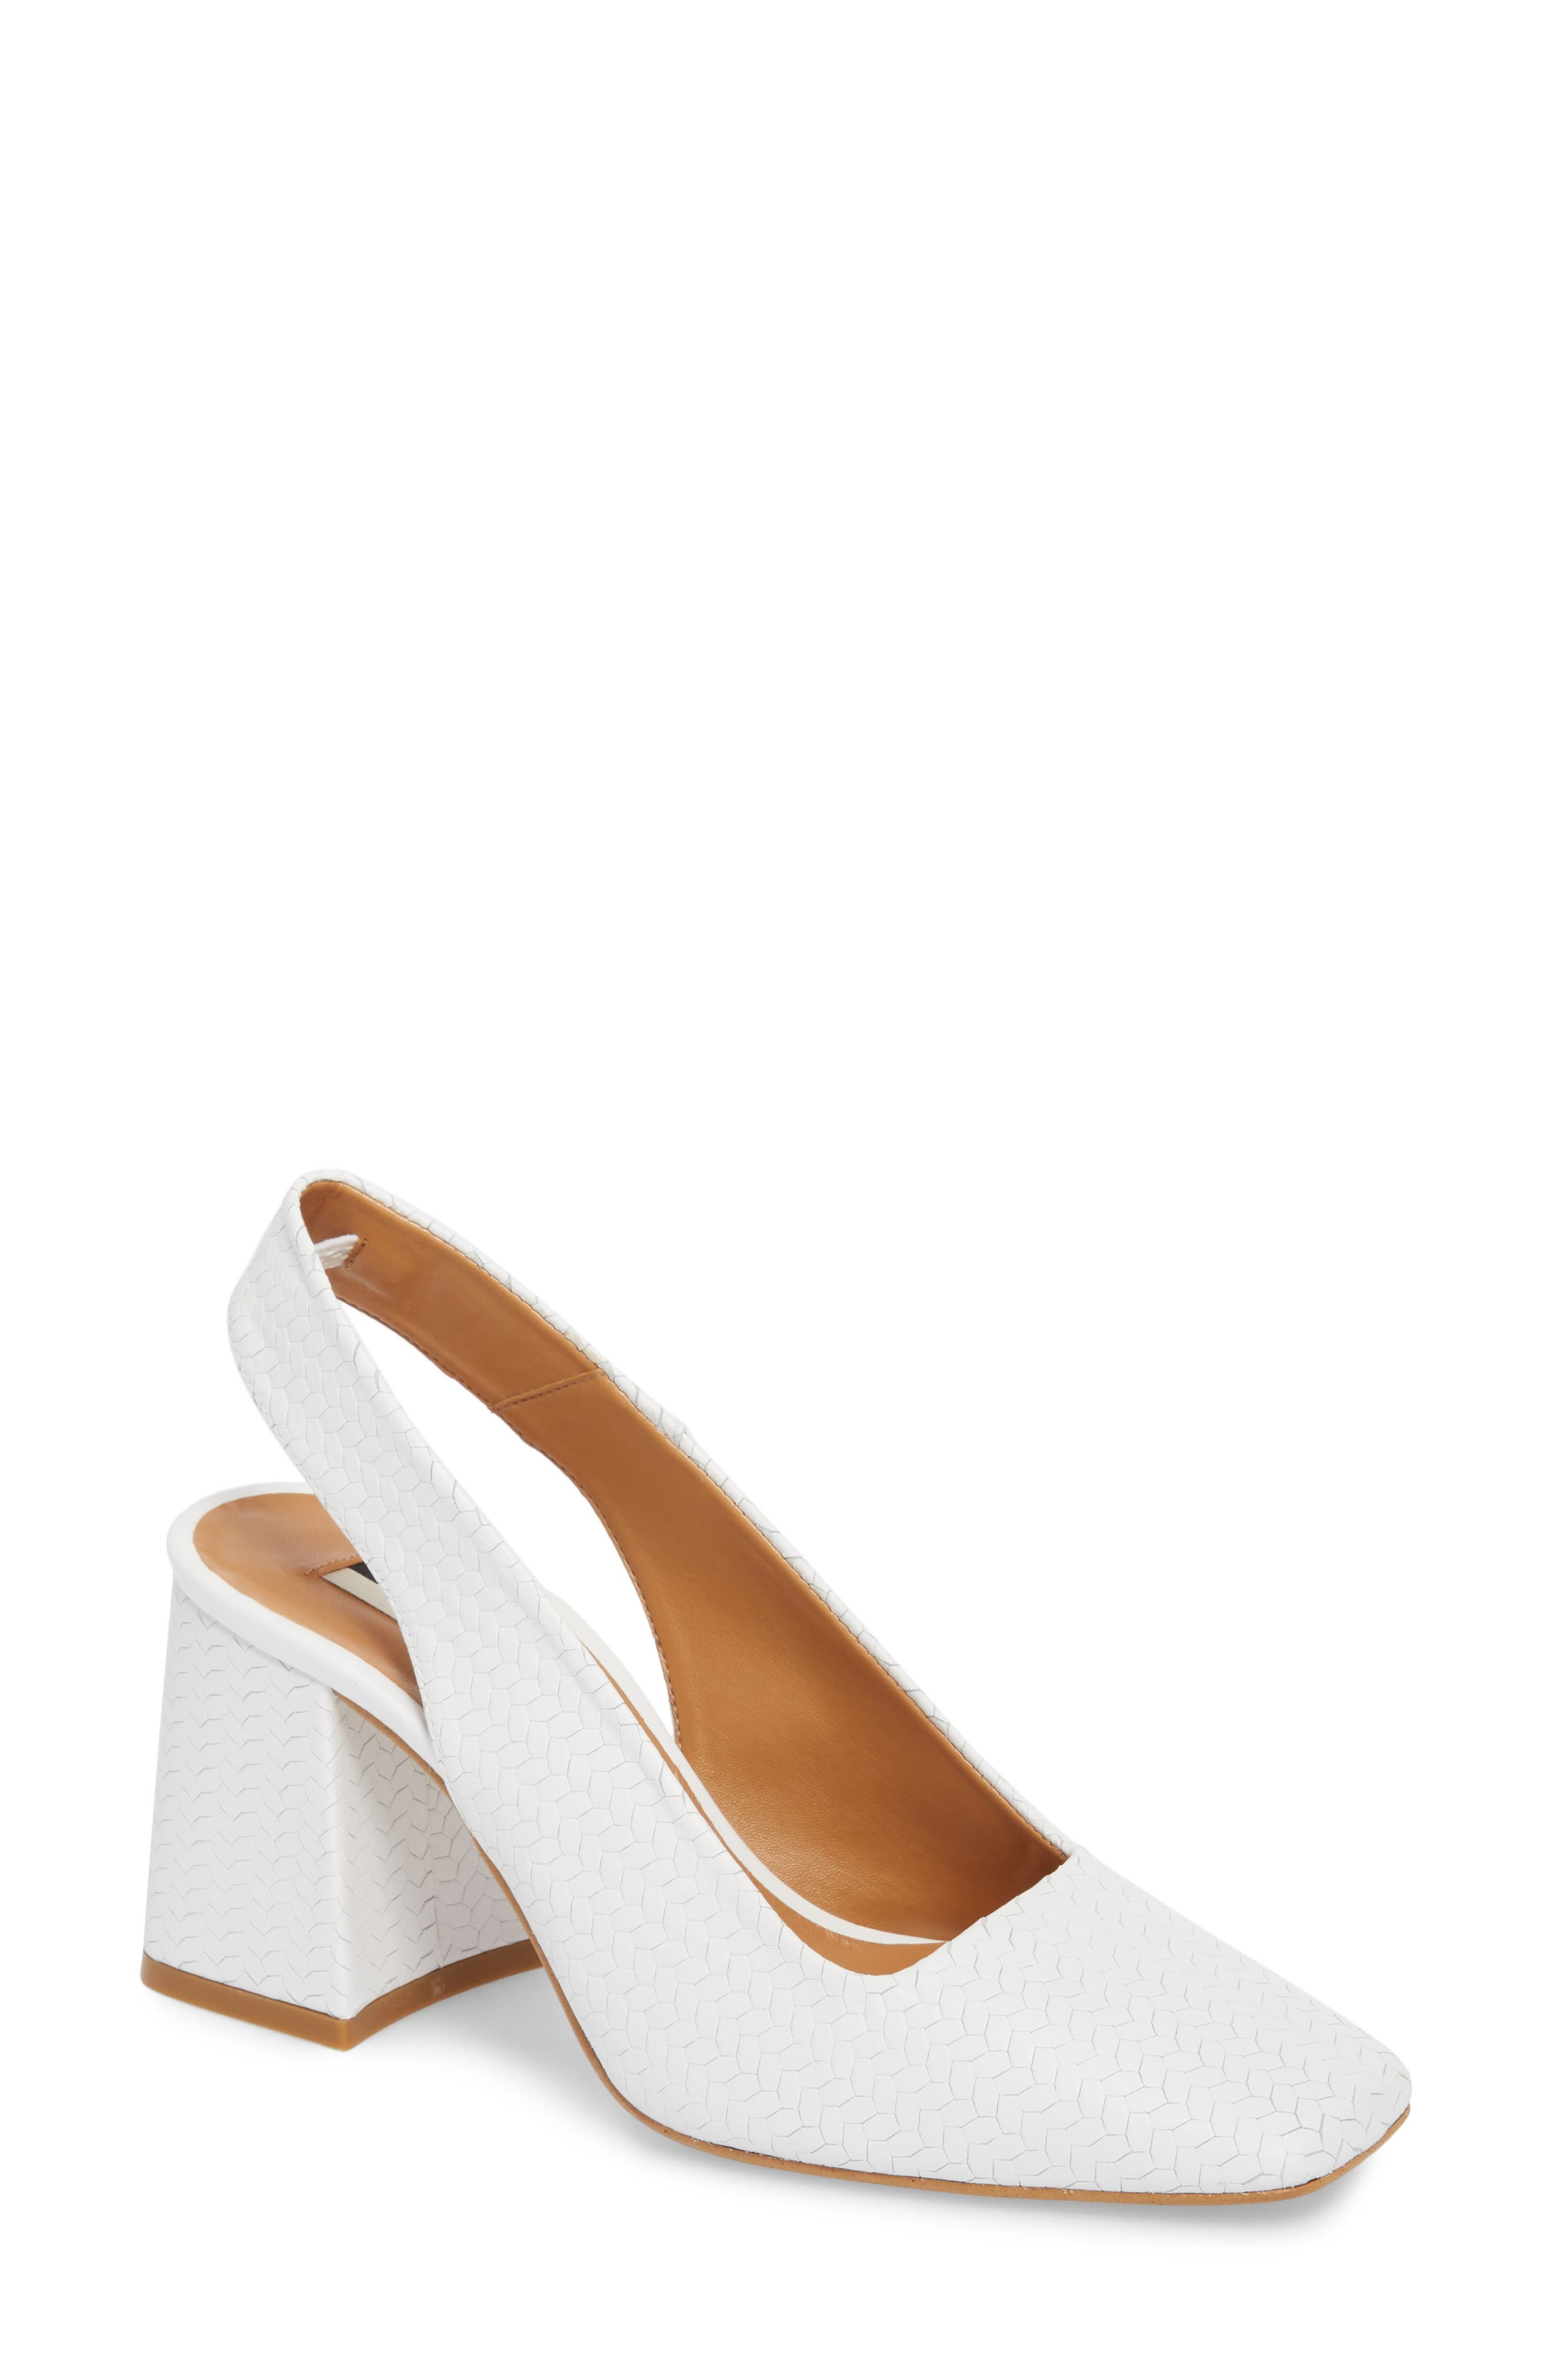 Gainor Block Heel Slingback Pump,                         Main,                         color, White